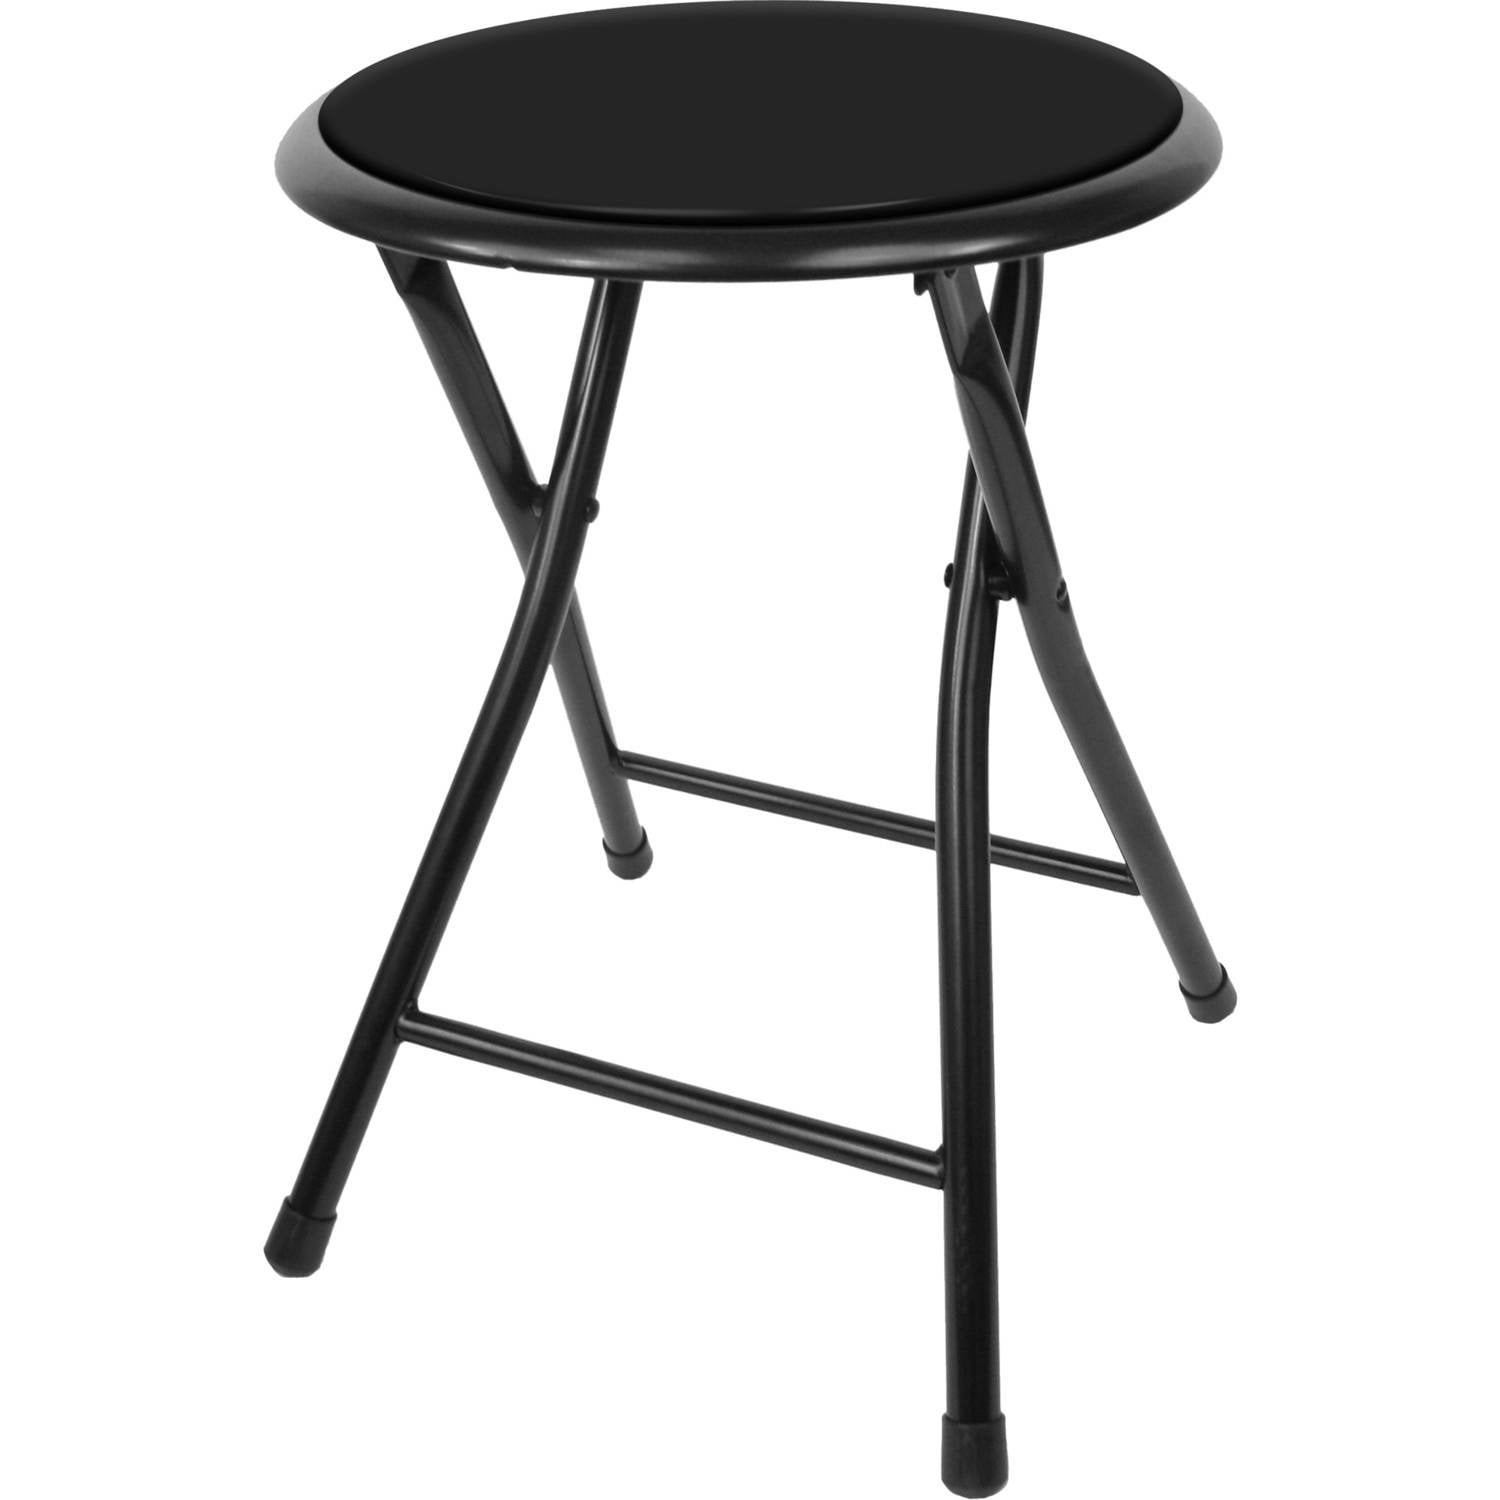 "Trademark Home Collection 18"" Cushioned Folding Stool Black"